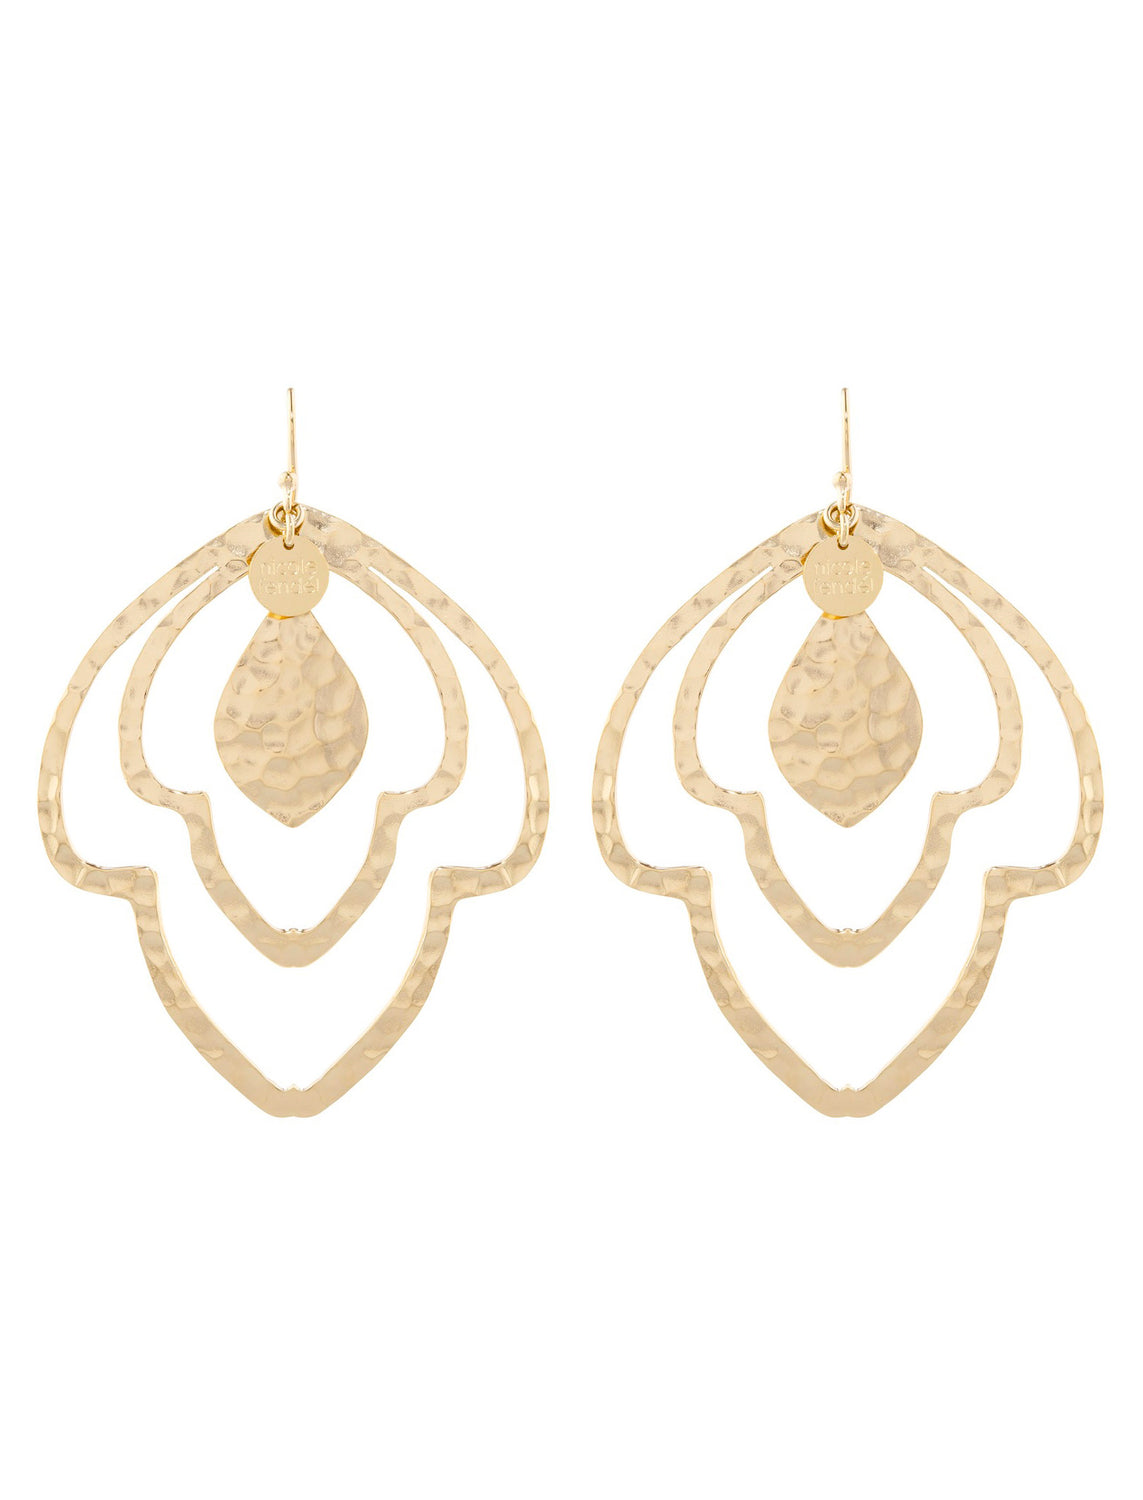 Nicole Fendel Heidi Statement Earrings - The Artisan Storeroom